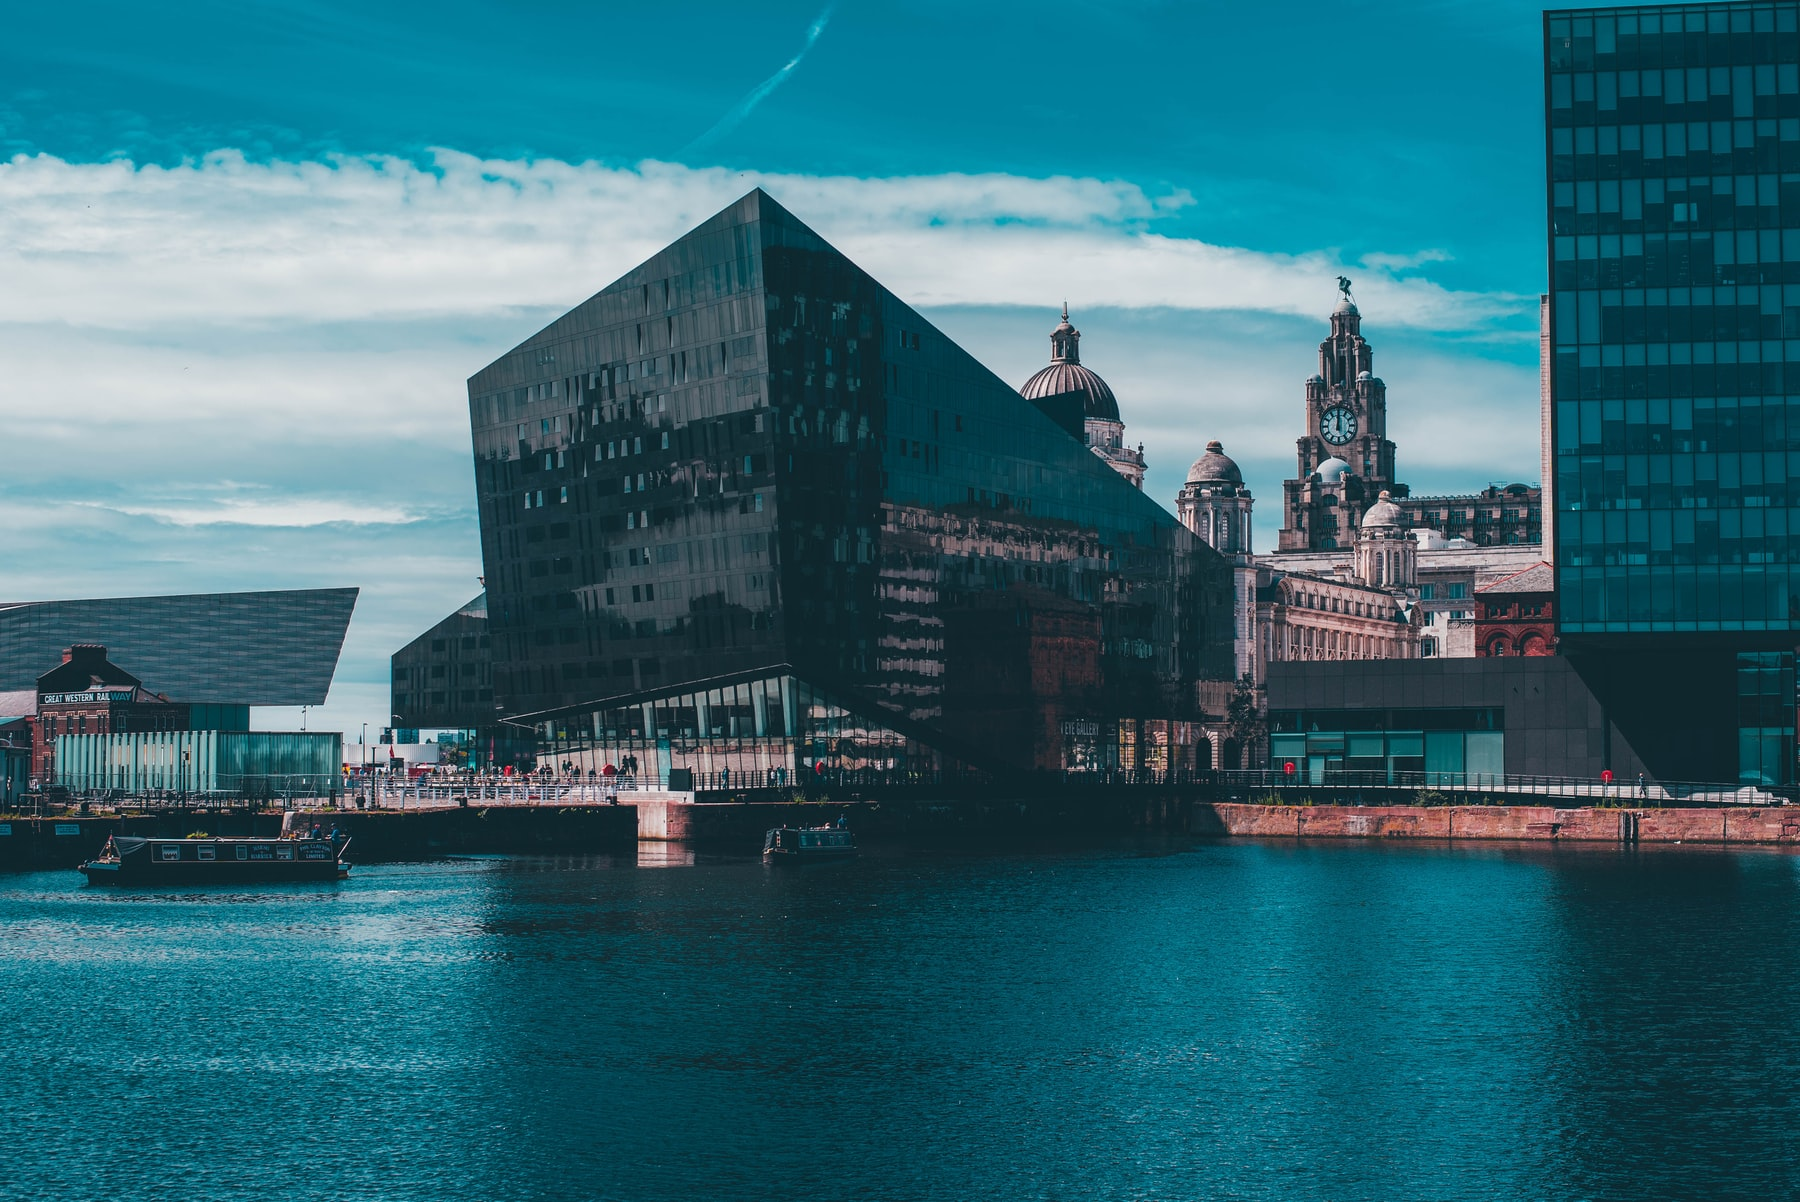 Image of Liverpool PierHead by Marcus Cramer on Unsplash